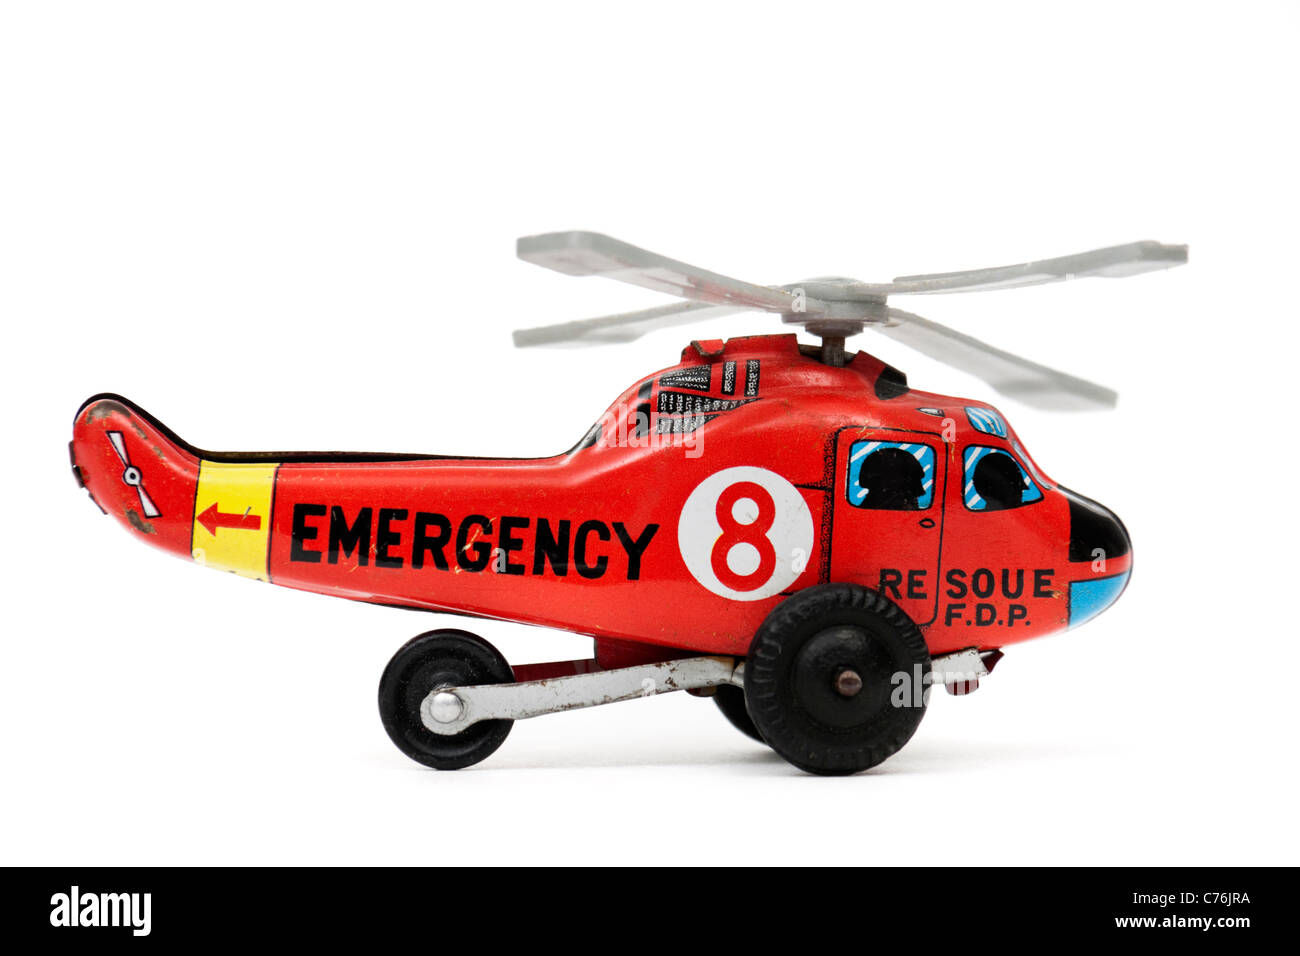 Vintage 1960's Japanese tinplate rescue helicopter toy - Stock Image